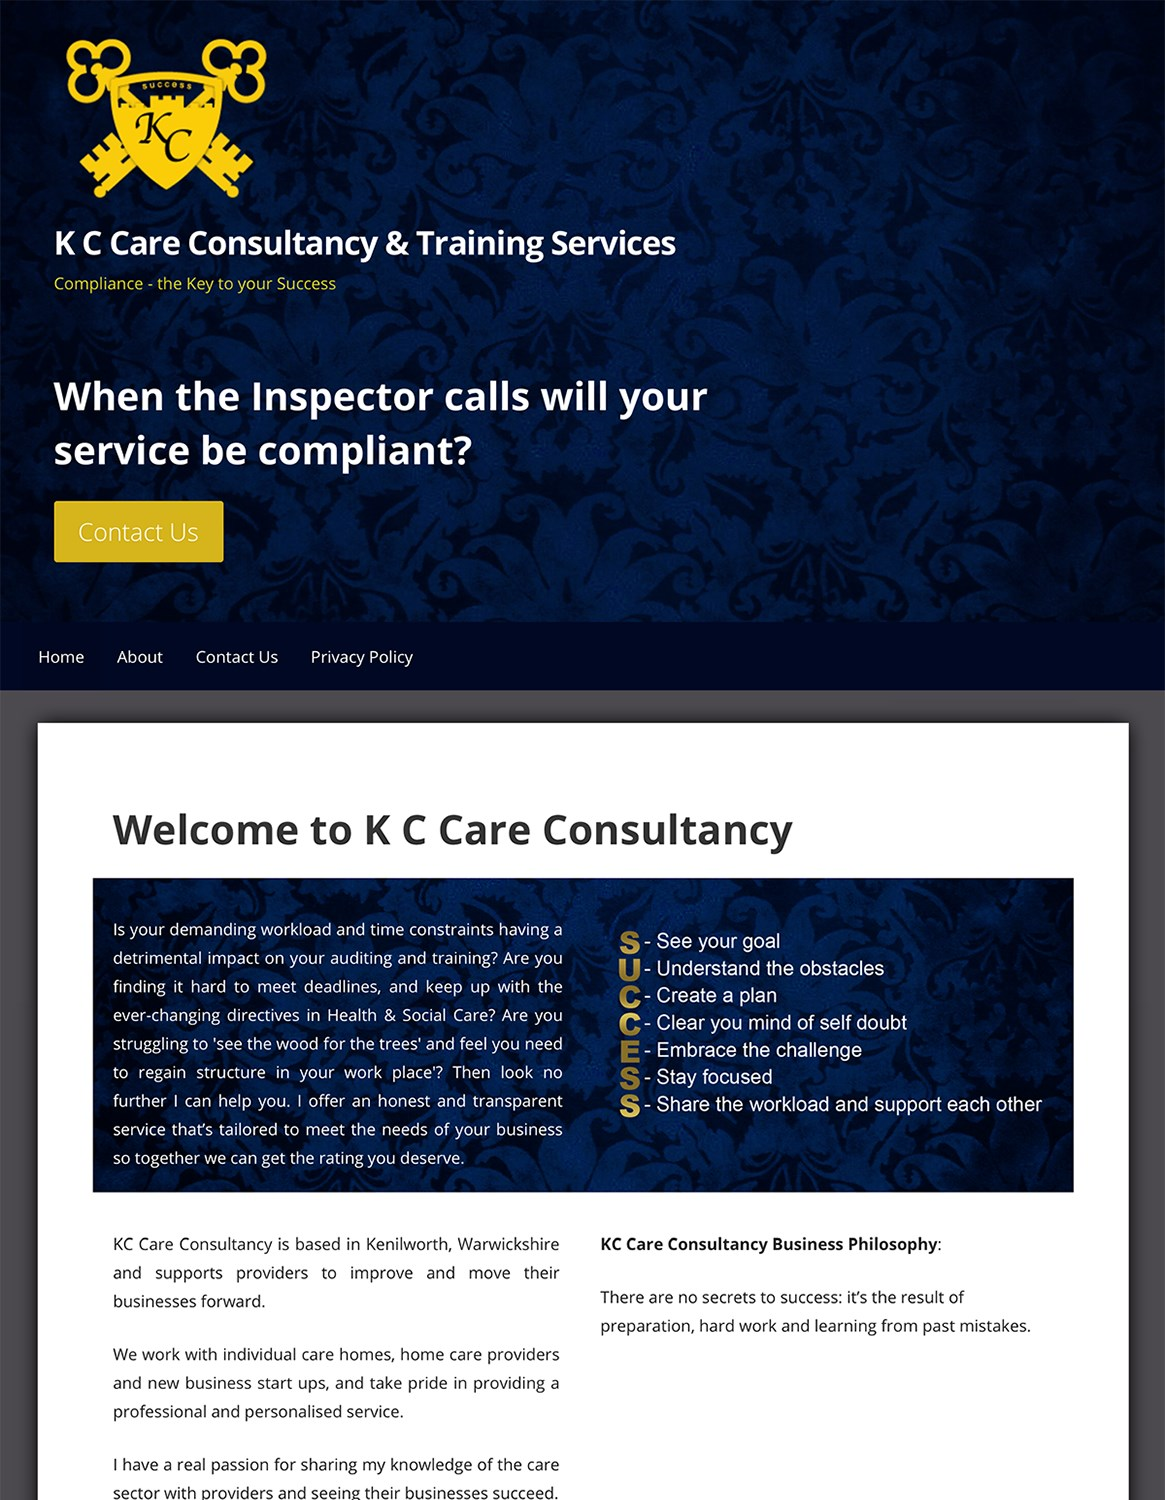 KC Care Consultancy & Training Services Kenilworth Warwickshire